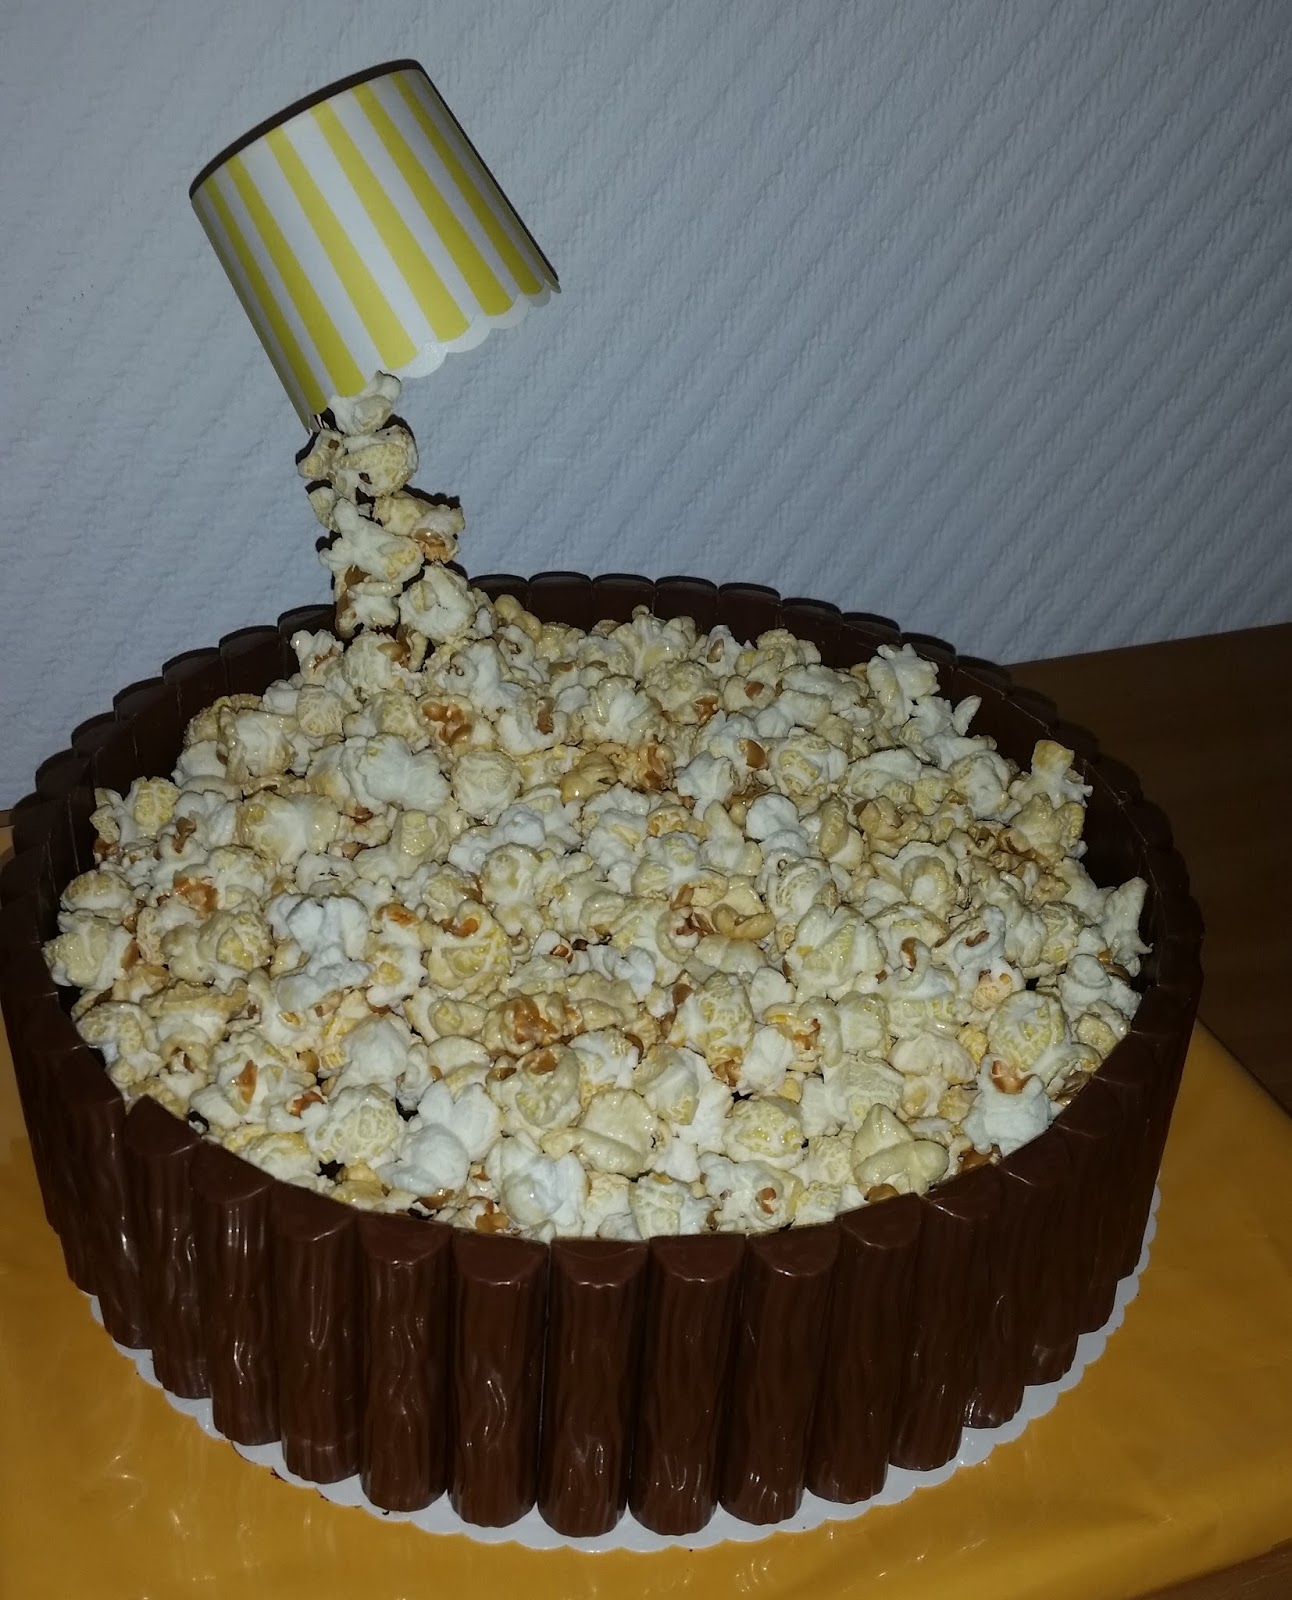 Sandy S Kitchendreams Popcorn Kuchen